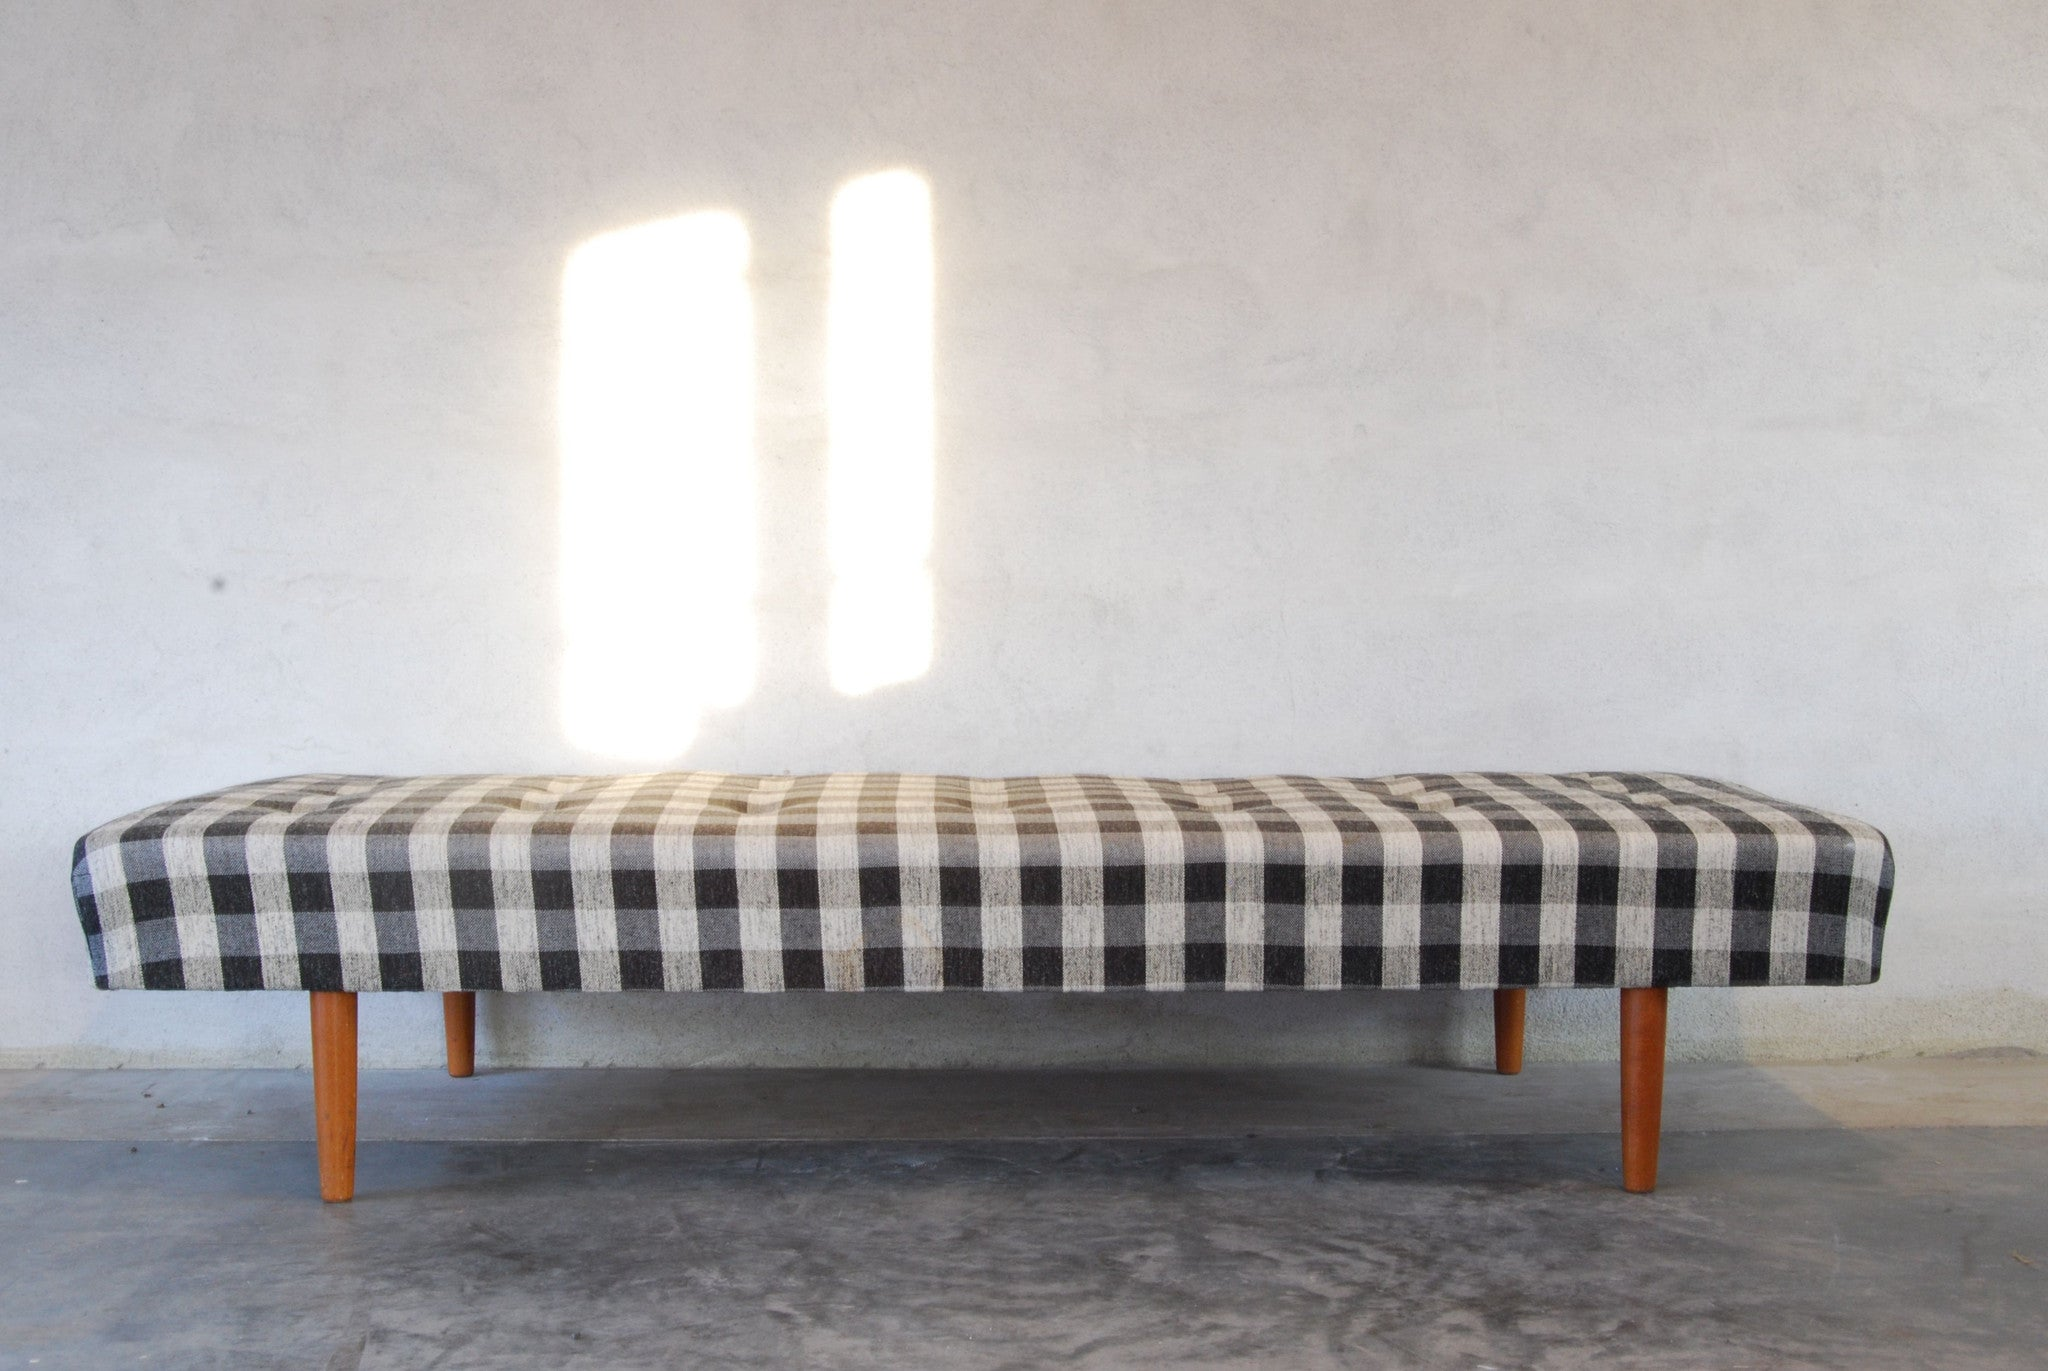 Spring cleaning special: Daybed